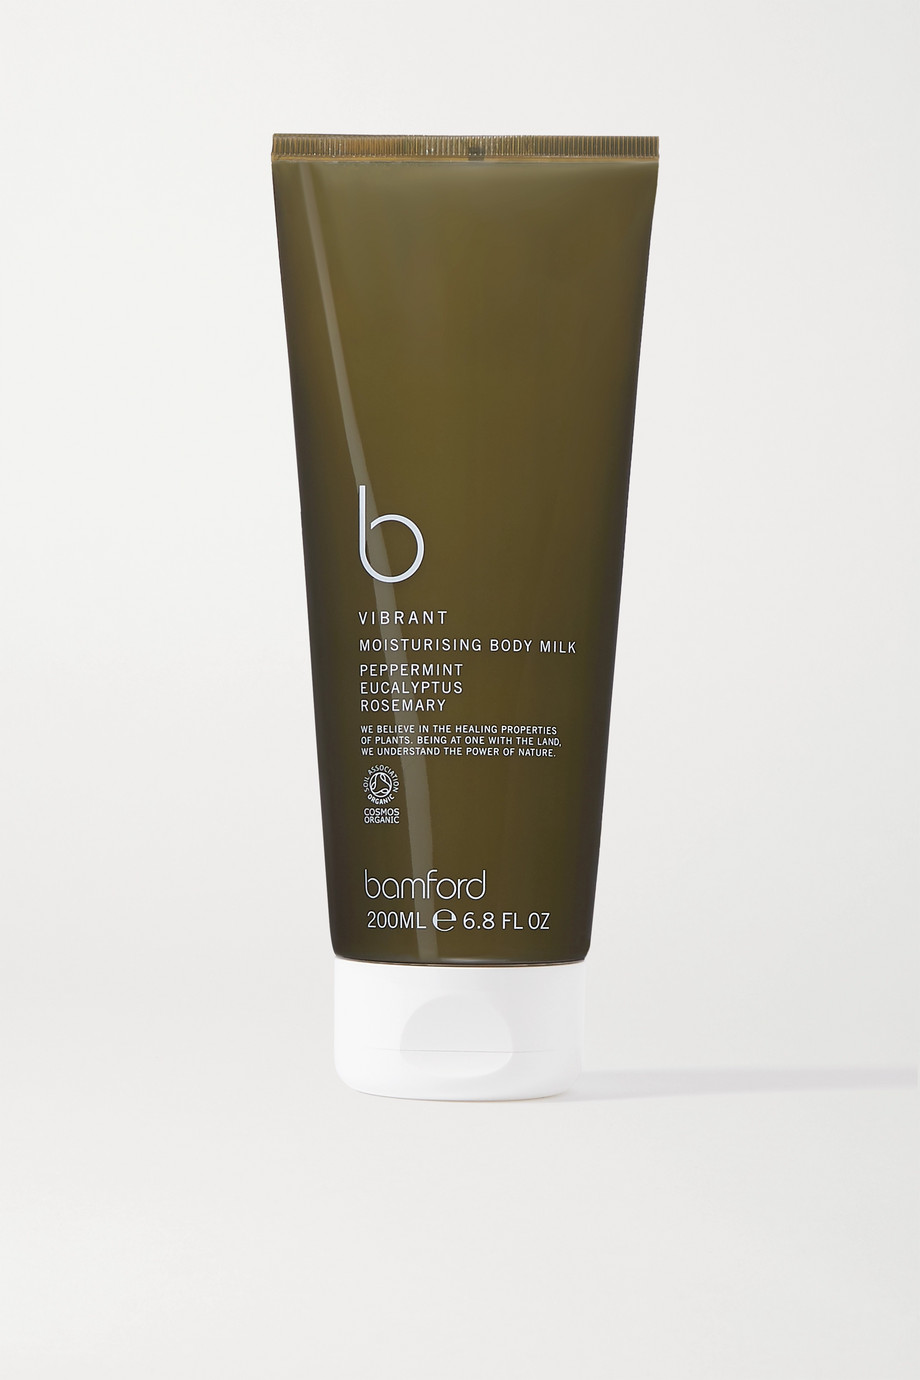 BAMFORD B Vibrant Body Milk, 200ml